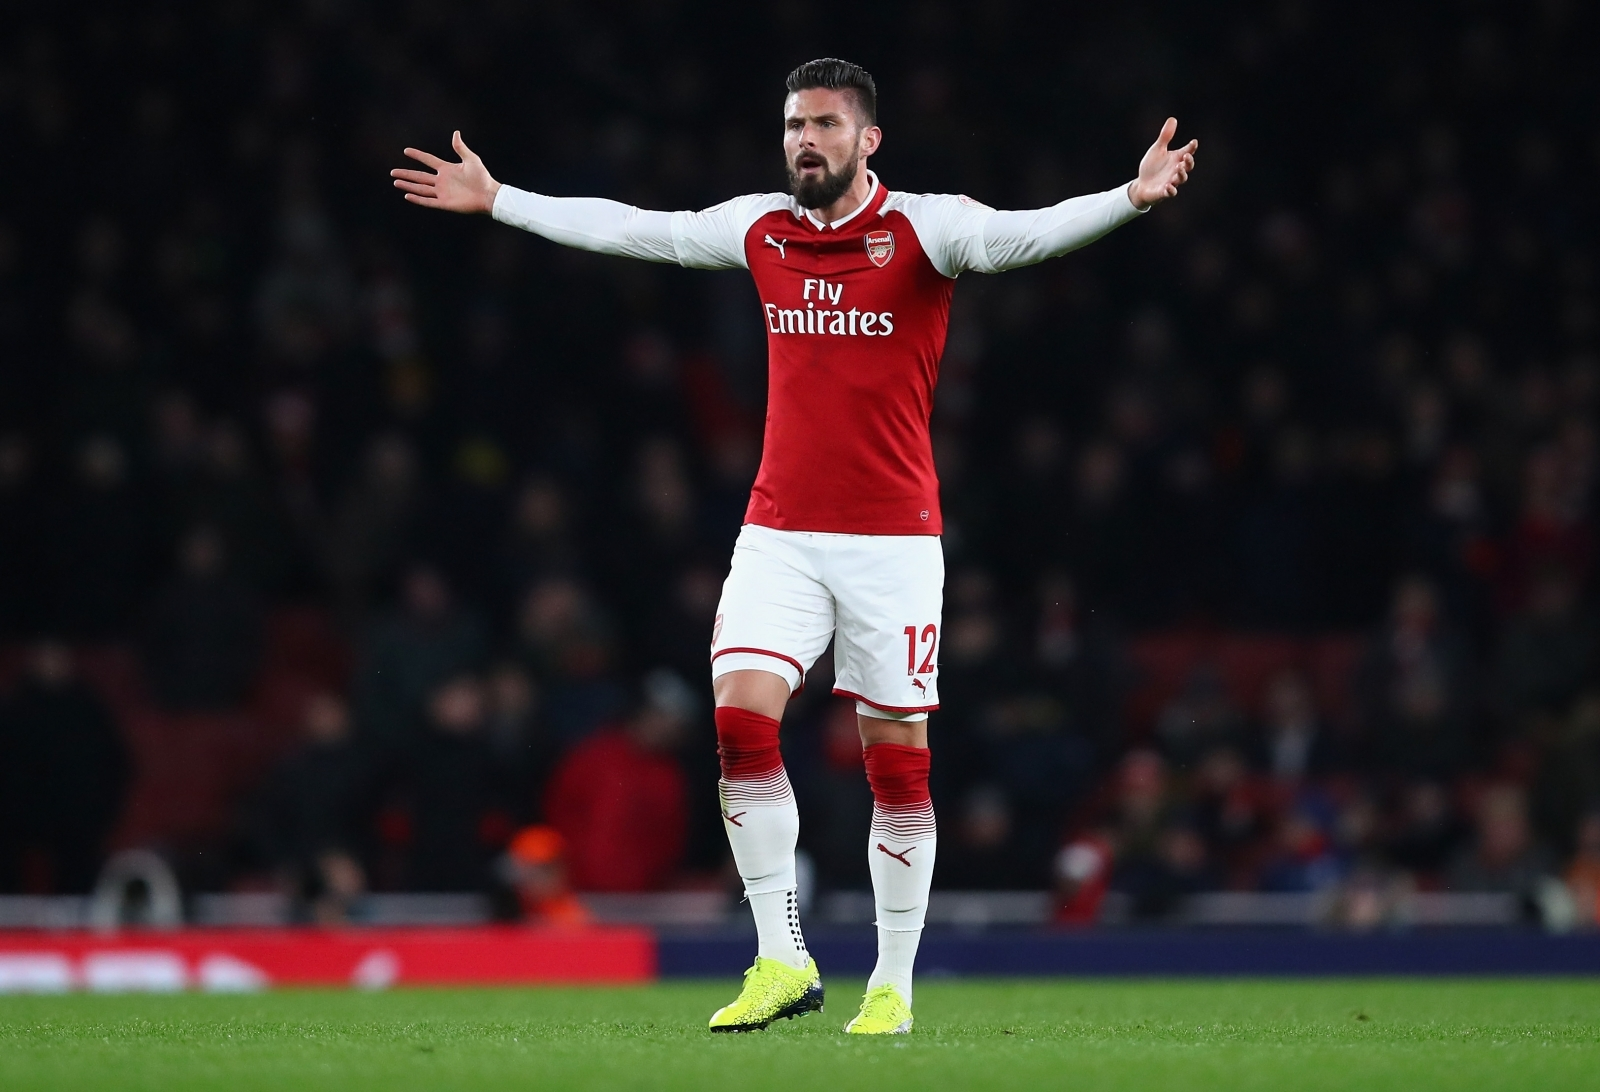 Olivier Giroud is the answer to Chelsea's striker search, says Ray Parlour